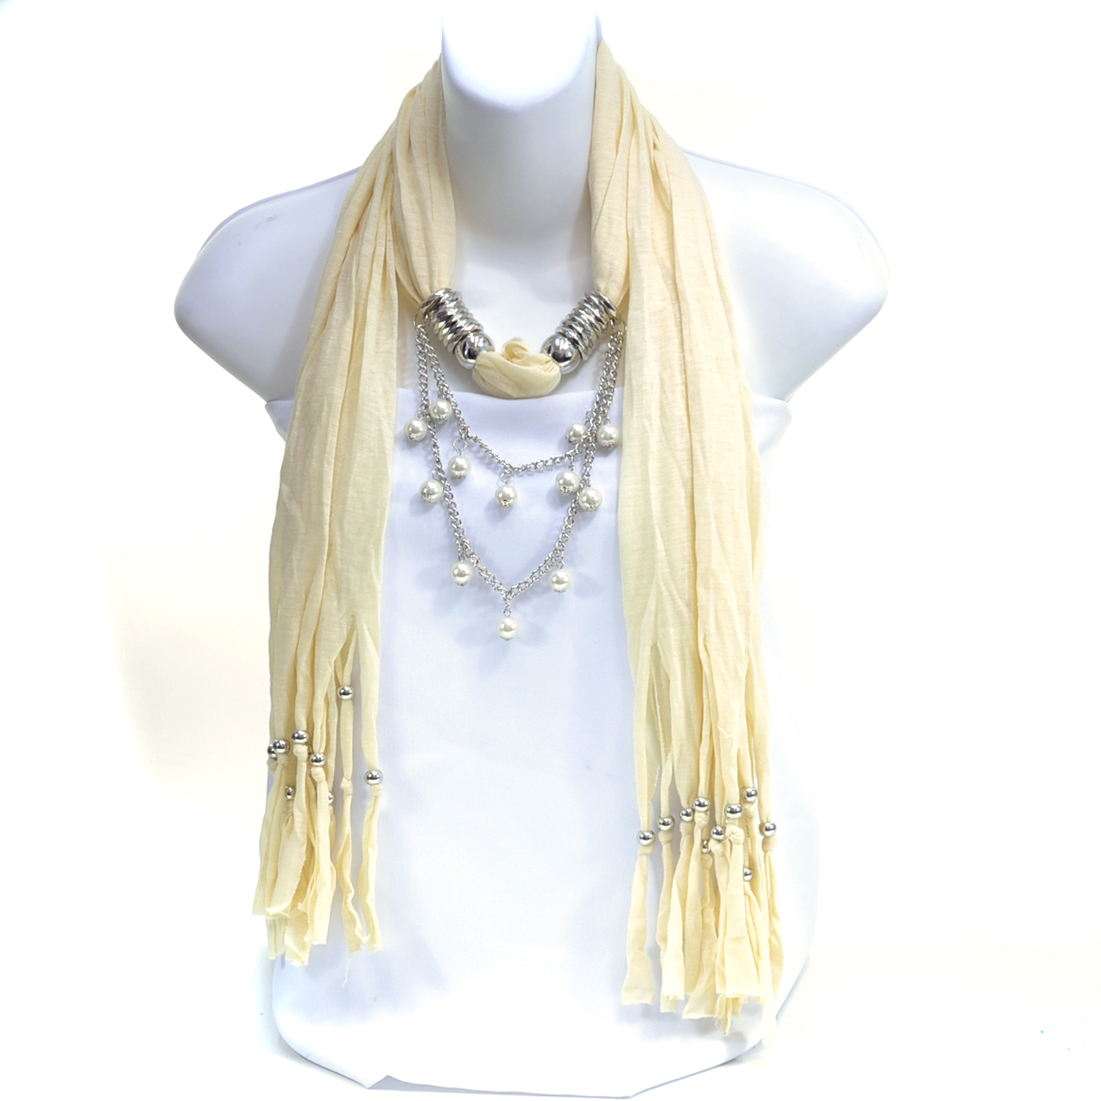 Metal Spikes and Wooden Beads Continuous Loop Scarf